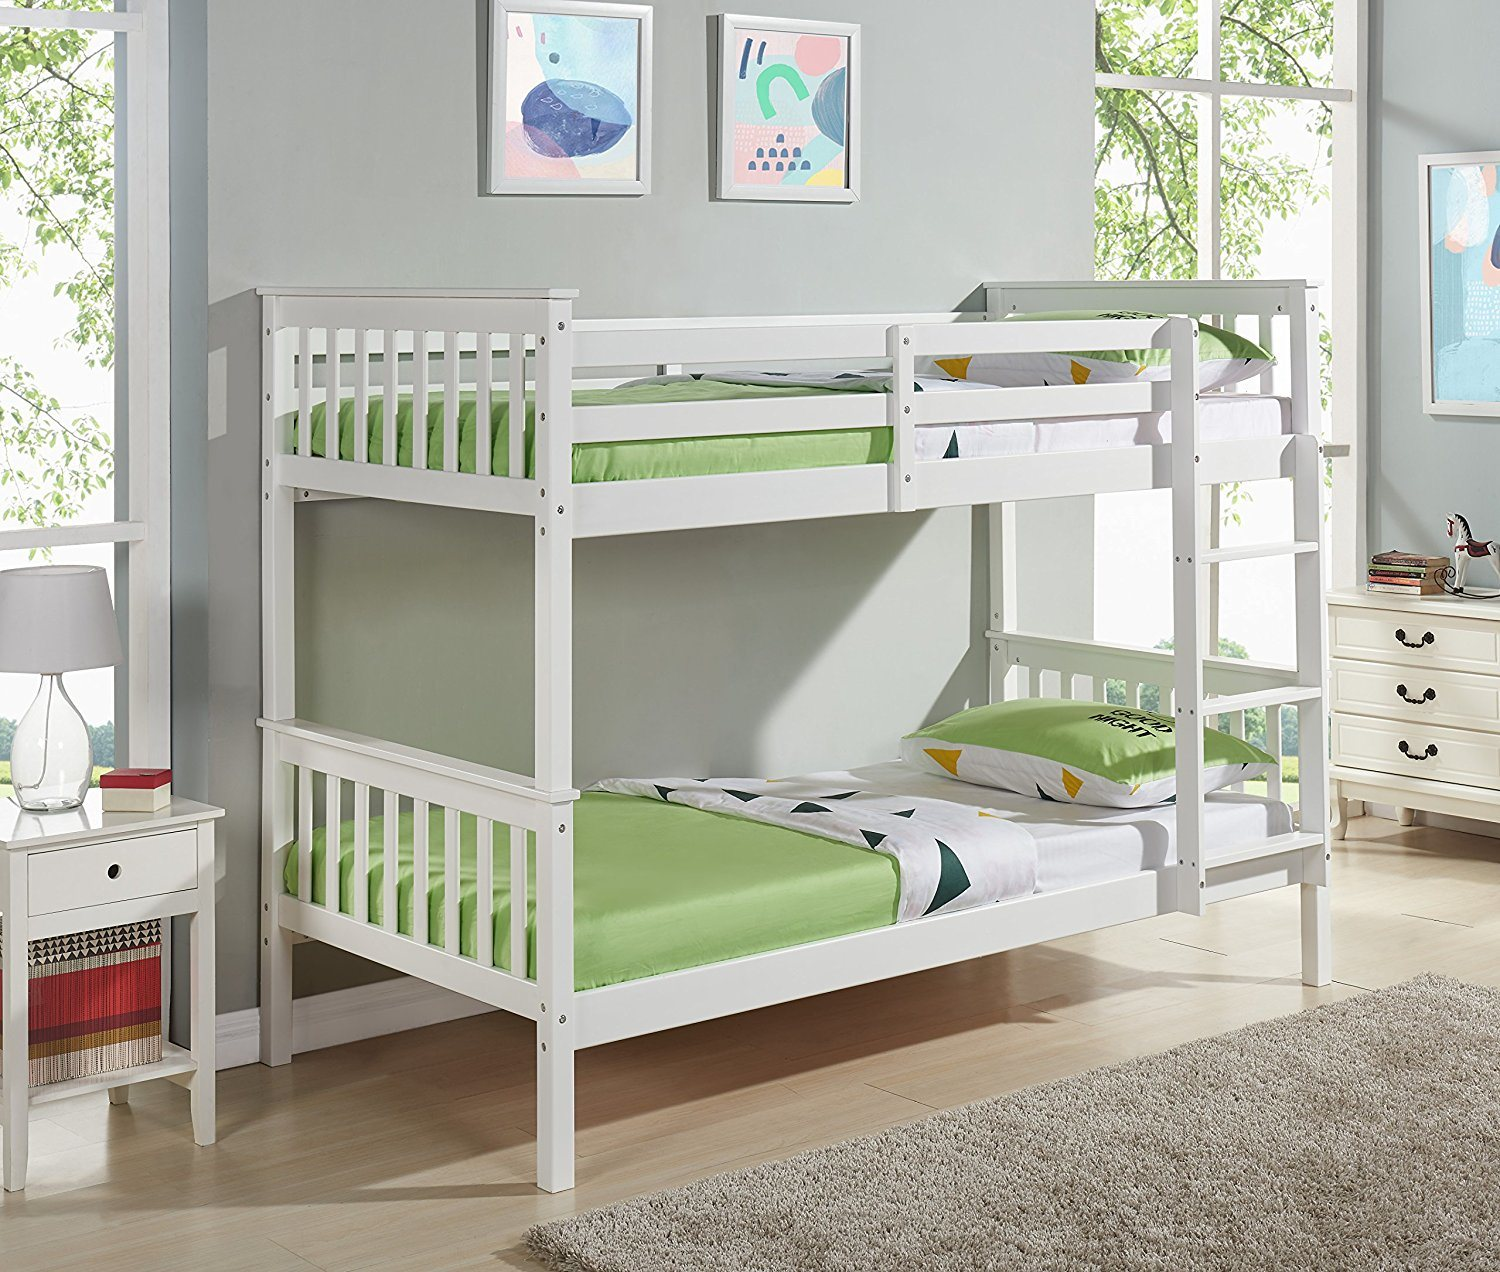 Solid Pine Wood Bunk Bed In White Color